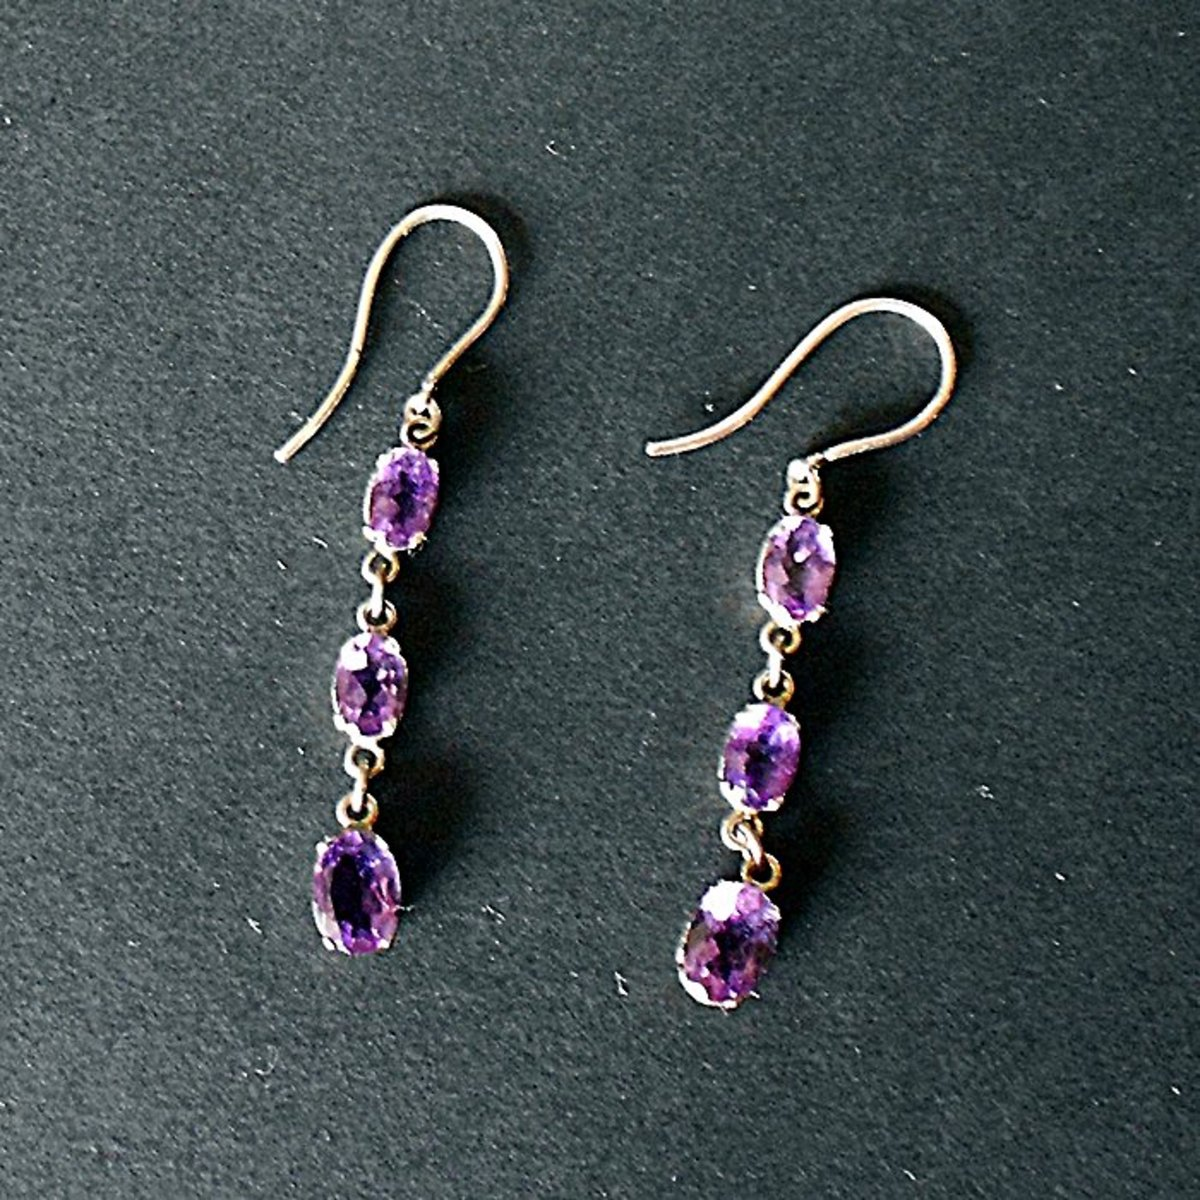 After cleaning, my vintage silver and amethyst earrings all nice and sparkly again